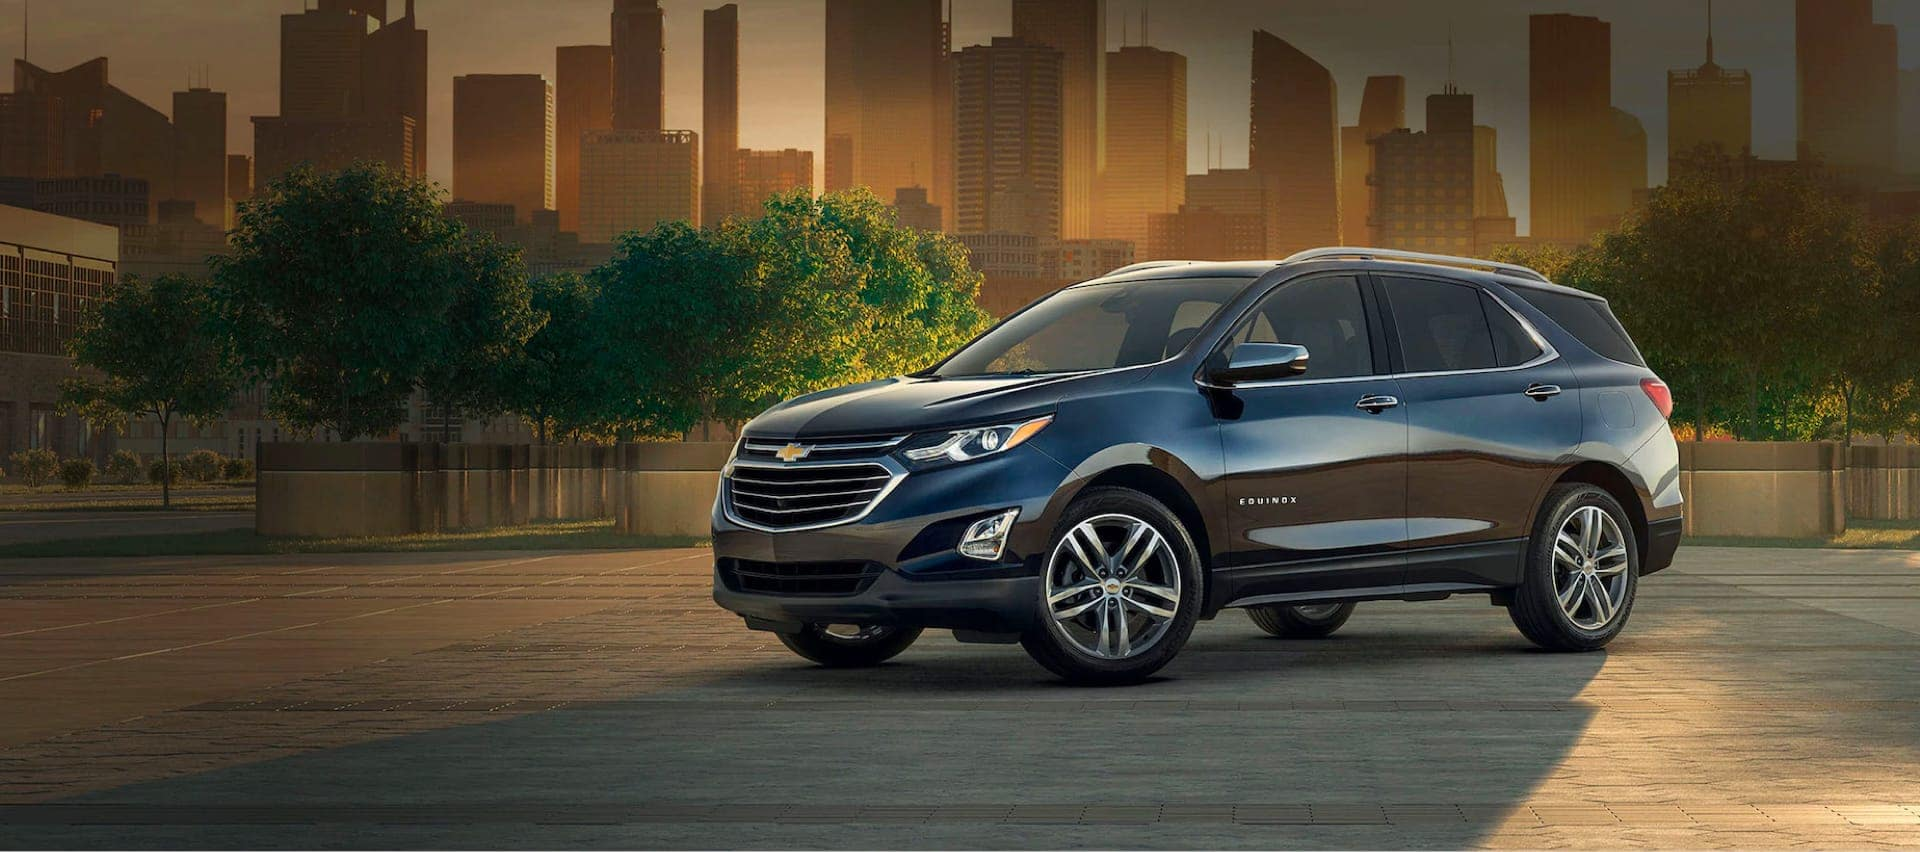 Chevy Equinox parked with a city landscape in the background